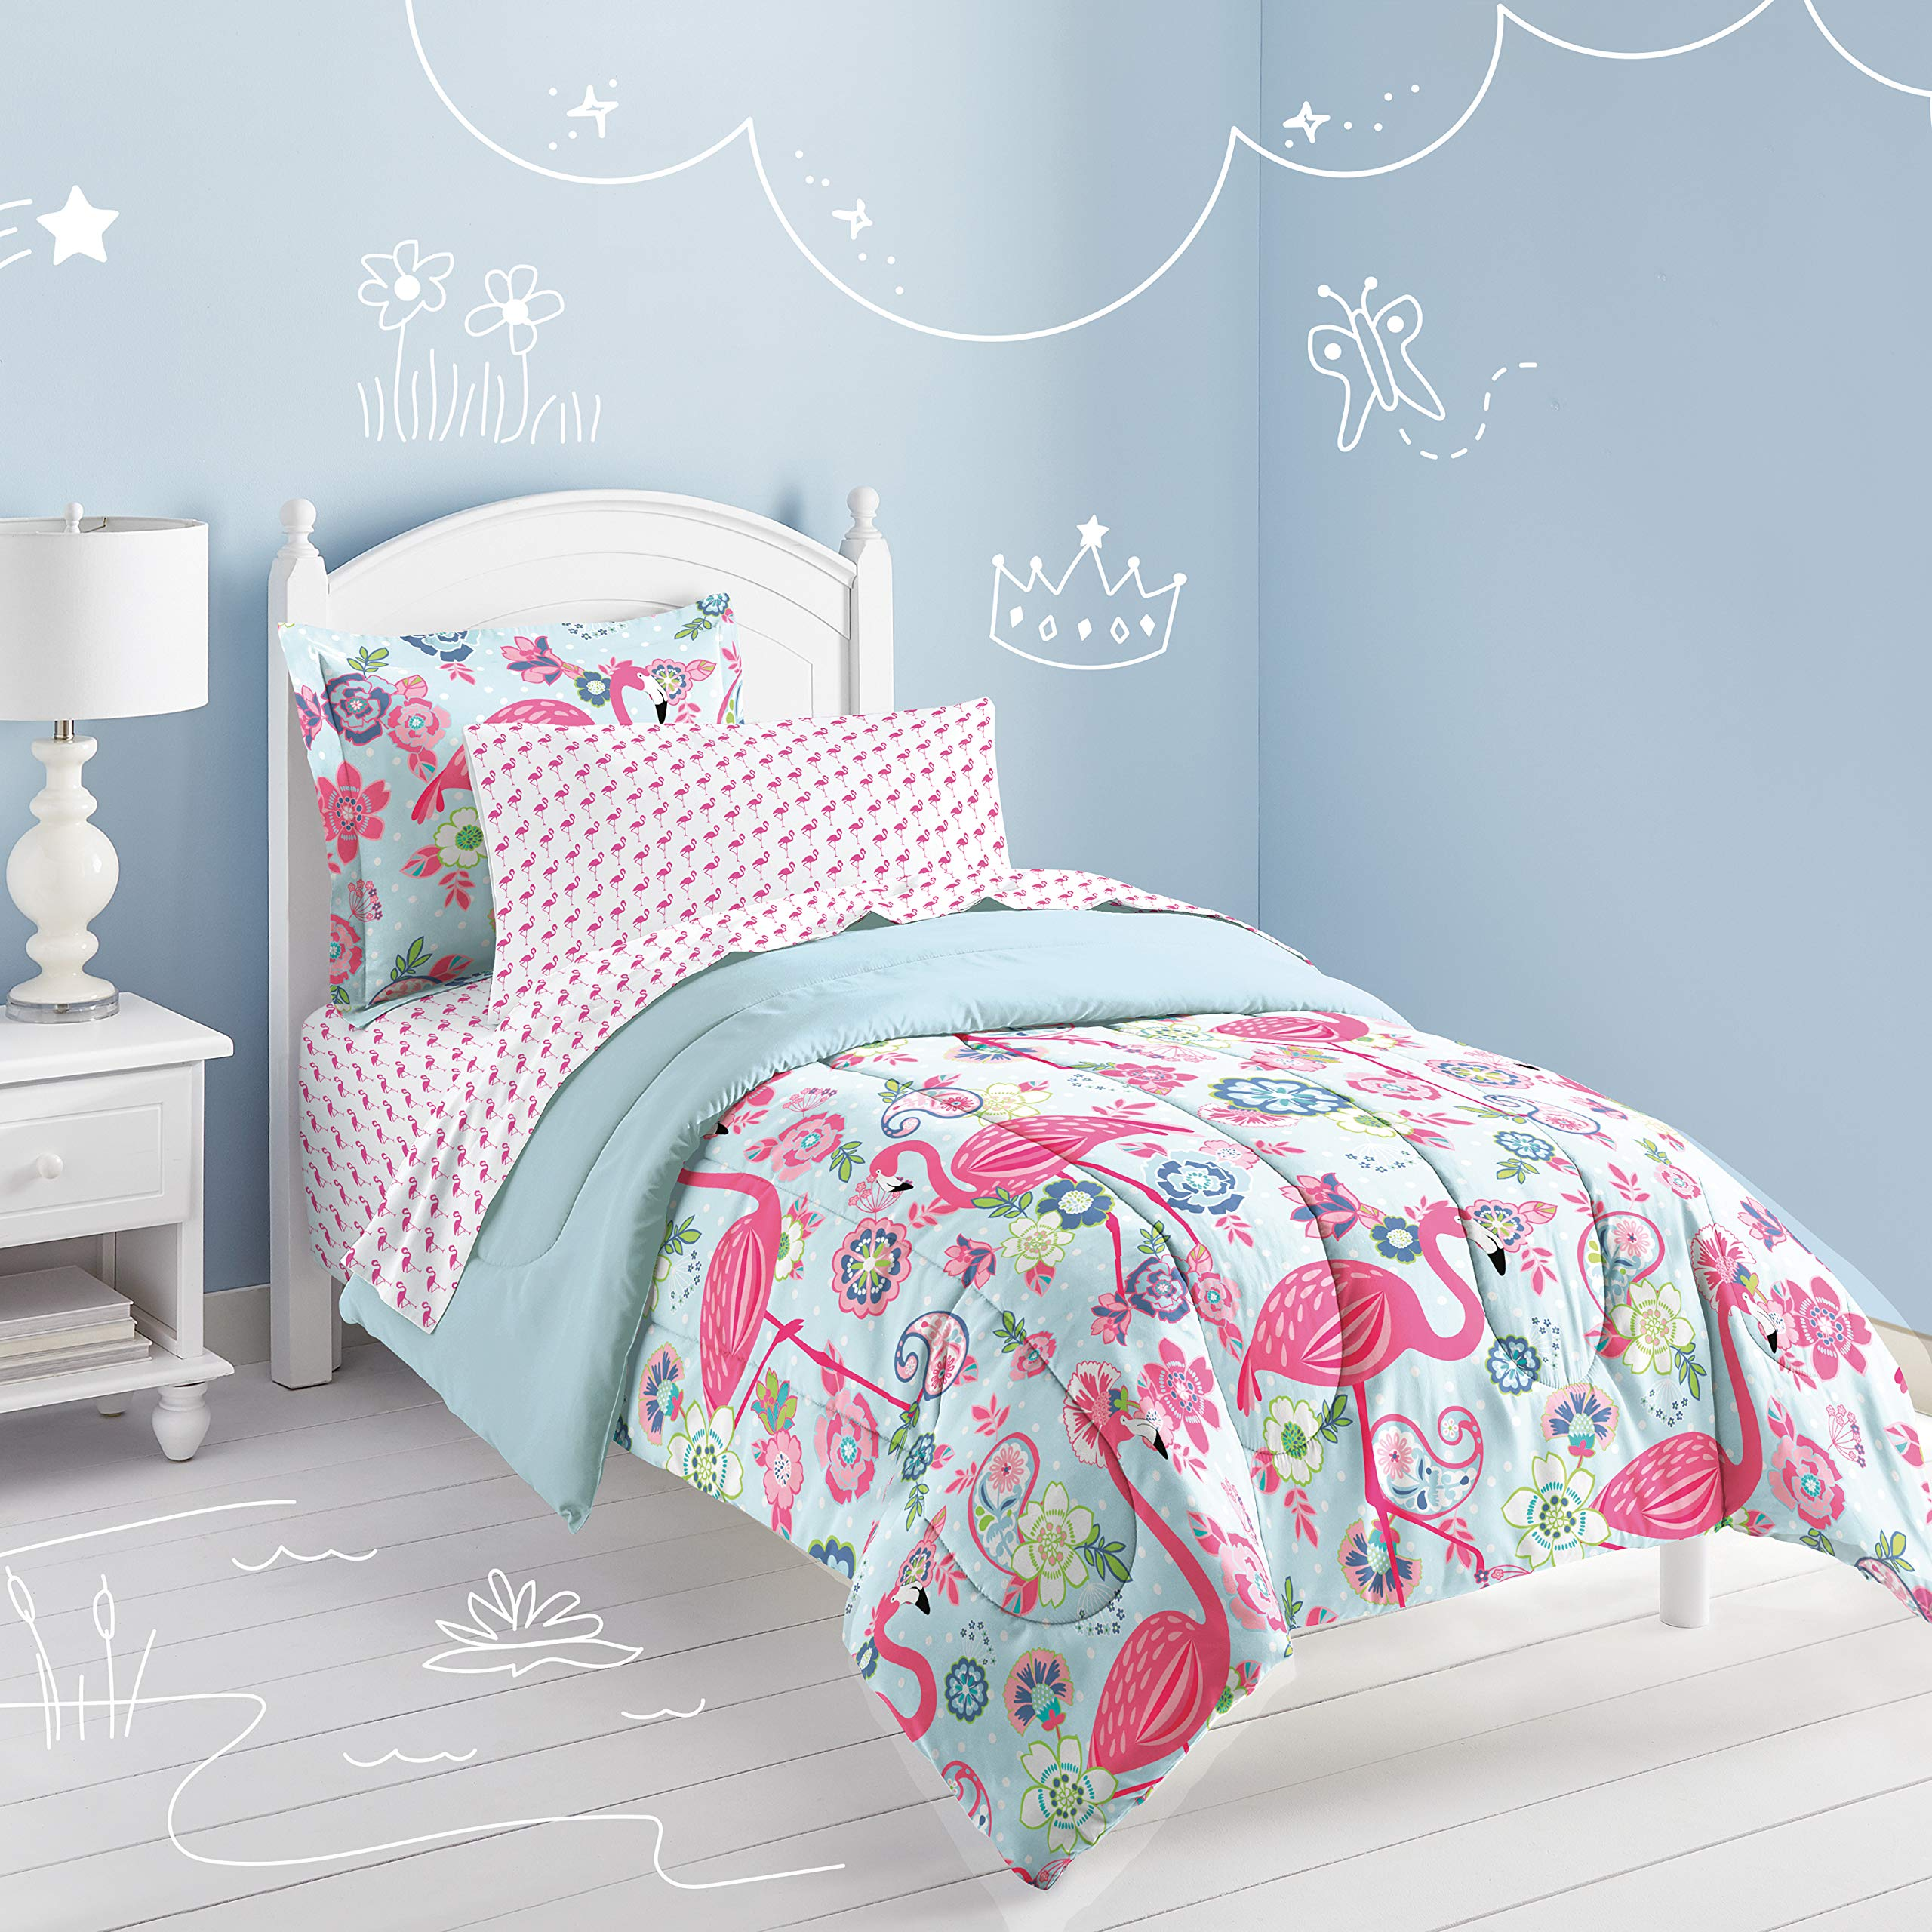 Dream Factory Flamingo Comforter Set, Pink, Twin by Dream Factory (Image #4)